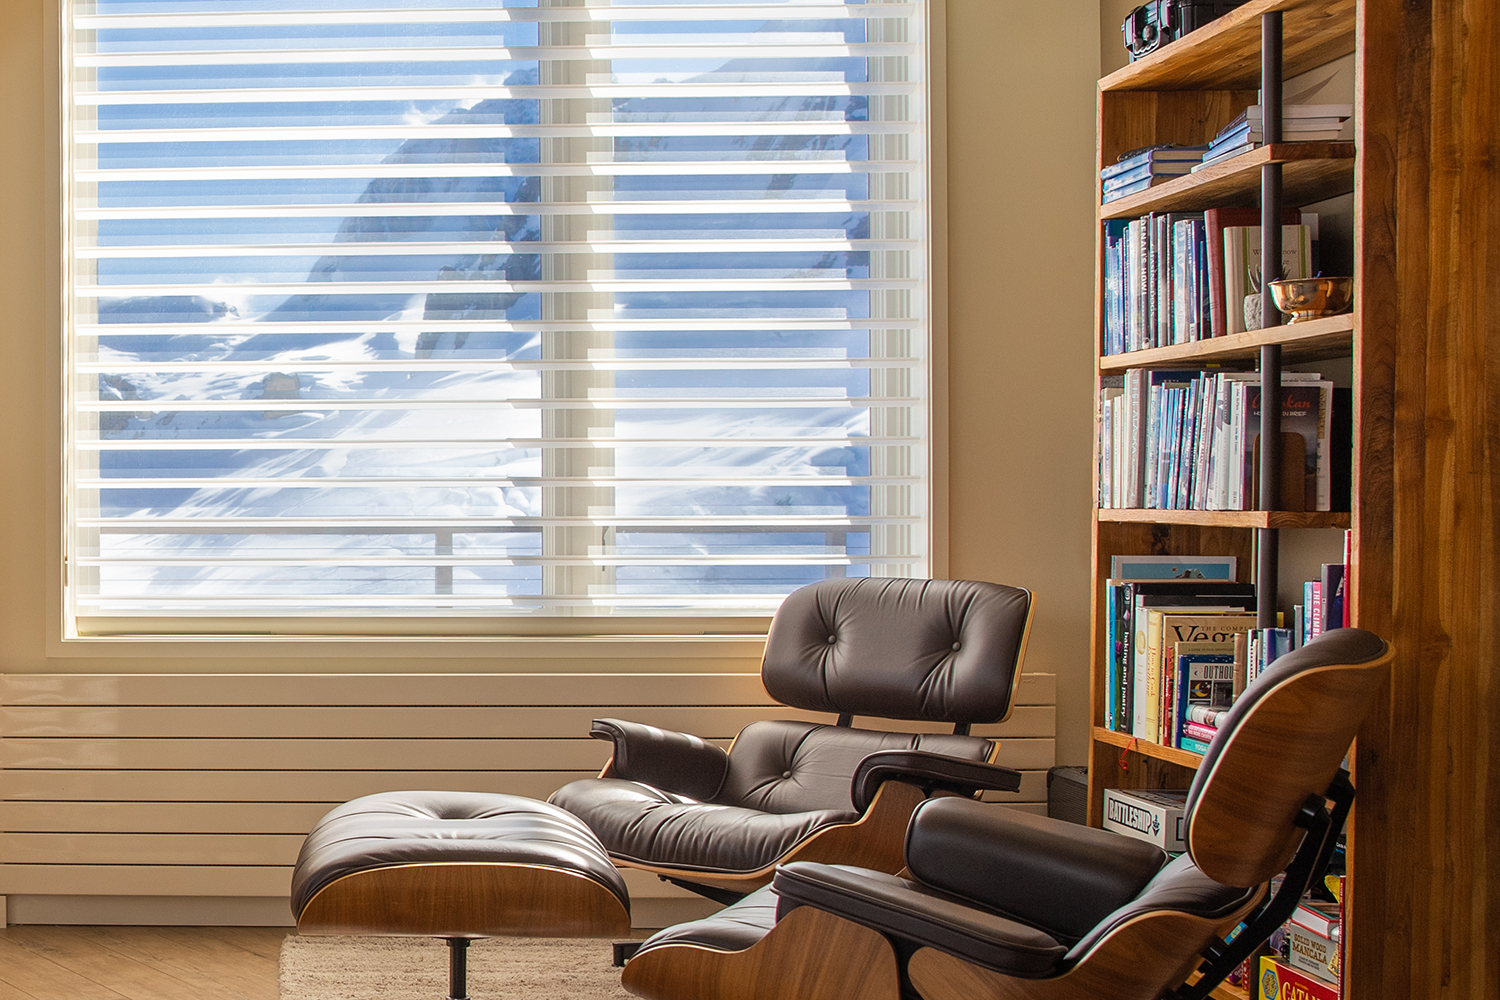 Tissu transparent Silhouette ClearView.